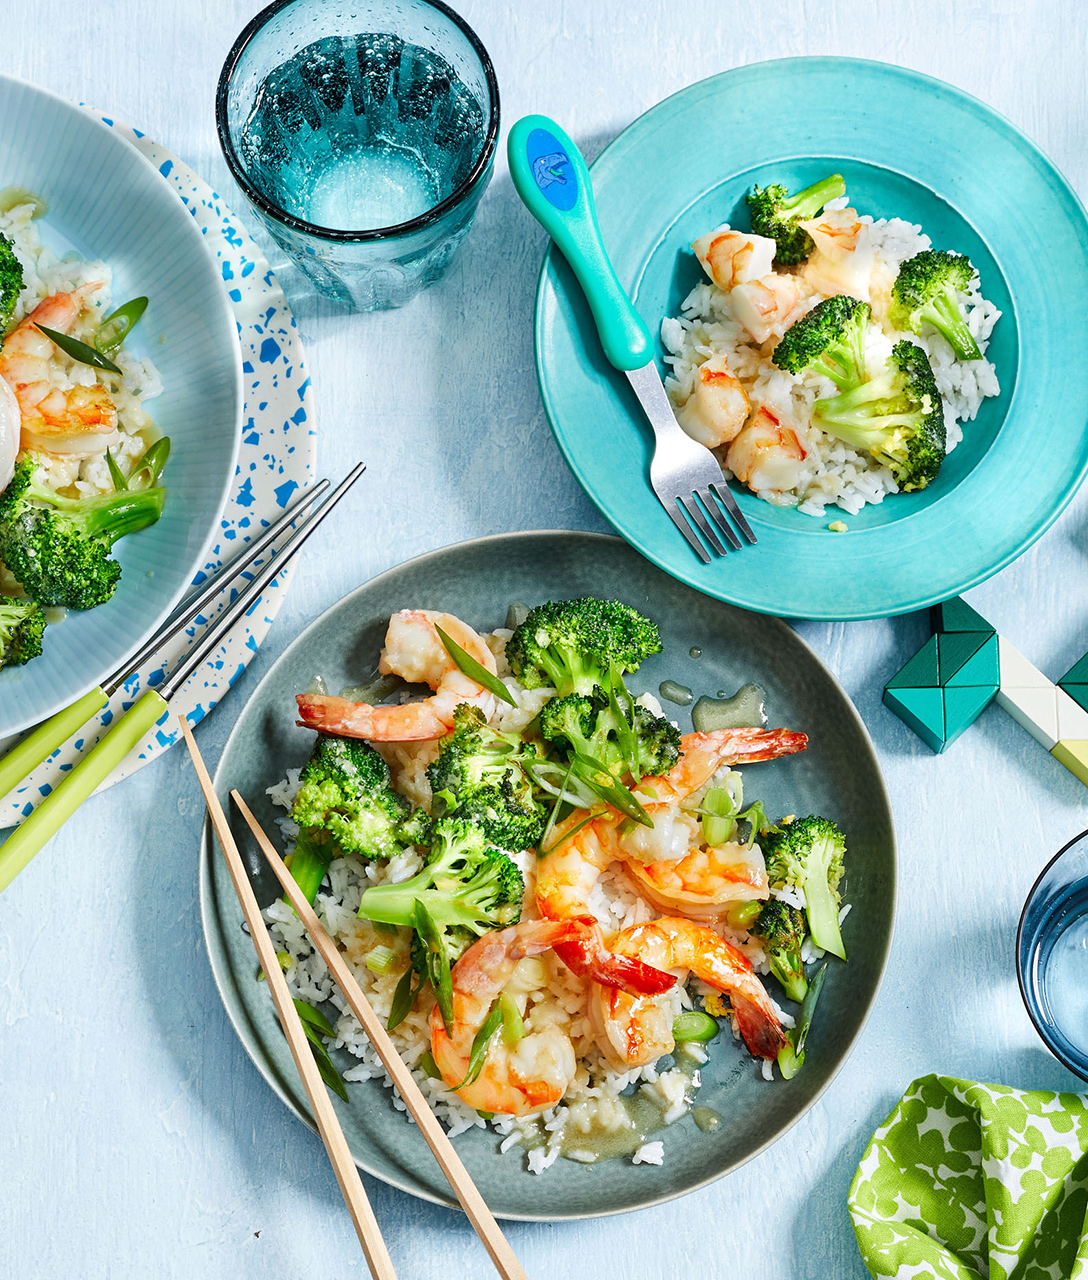 Stir-Fried Shrimp and Broccoli With Miso